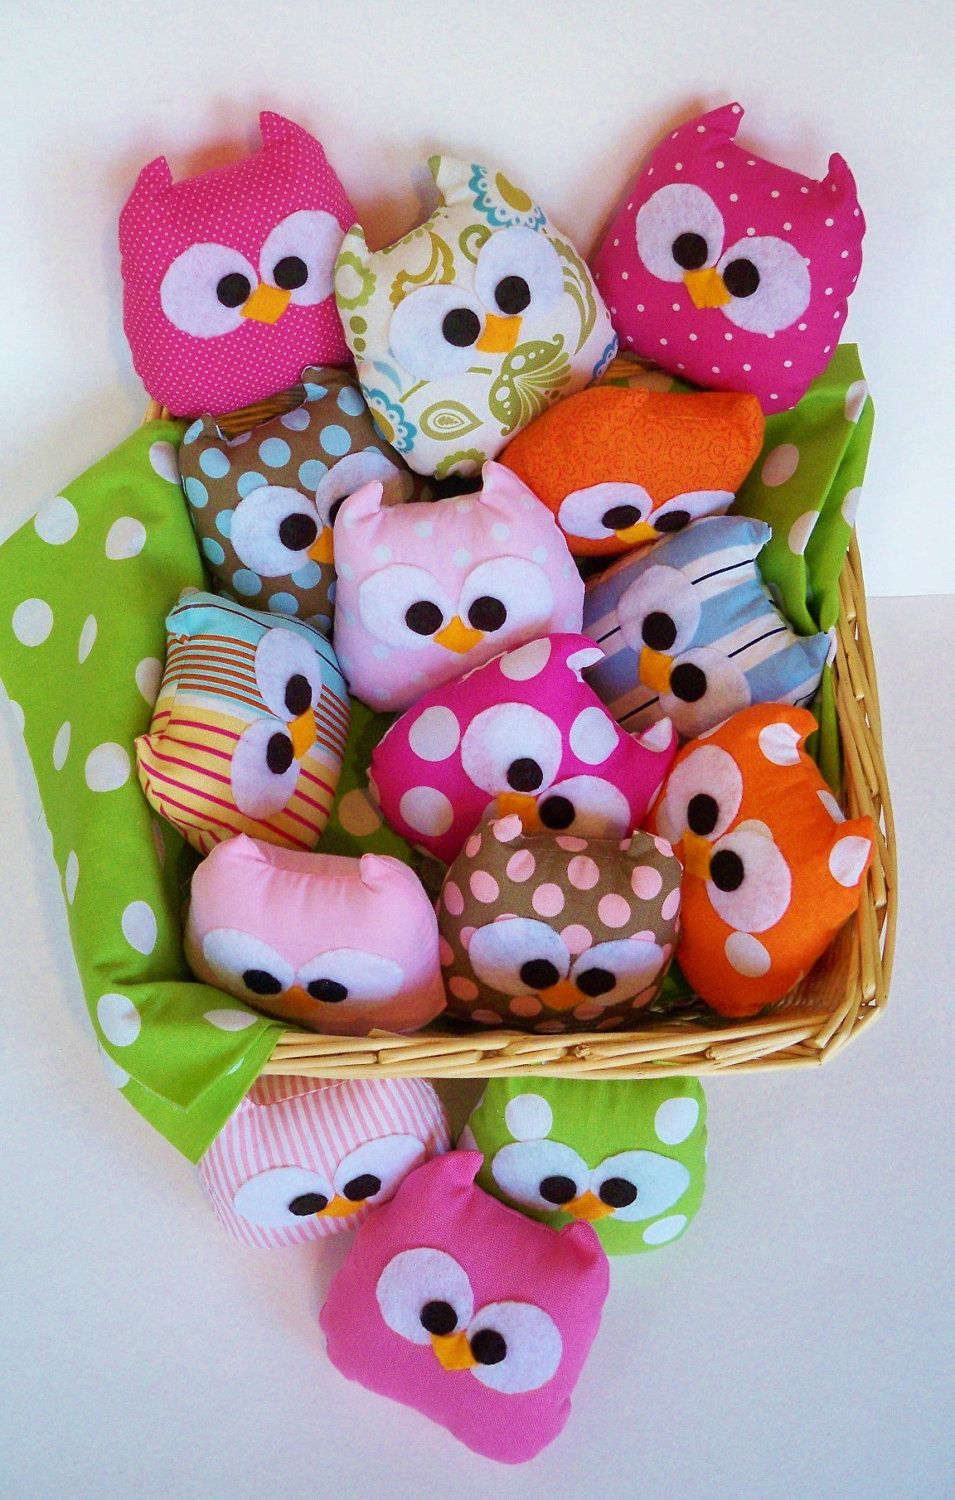 Plush owl to use at hand warmer or cool compress make with fleece